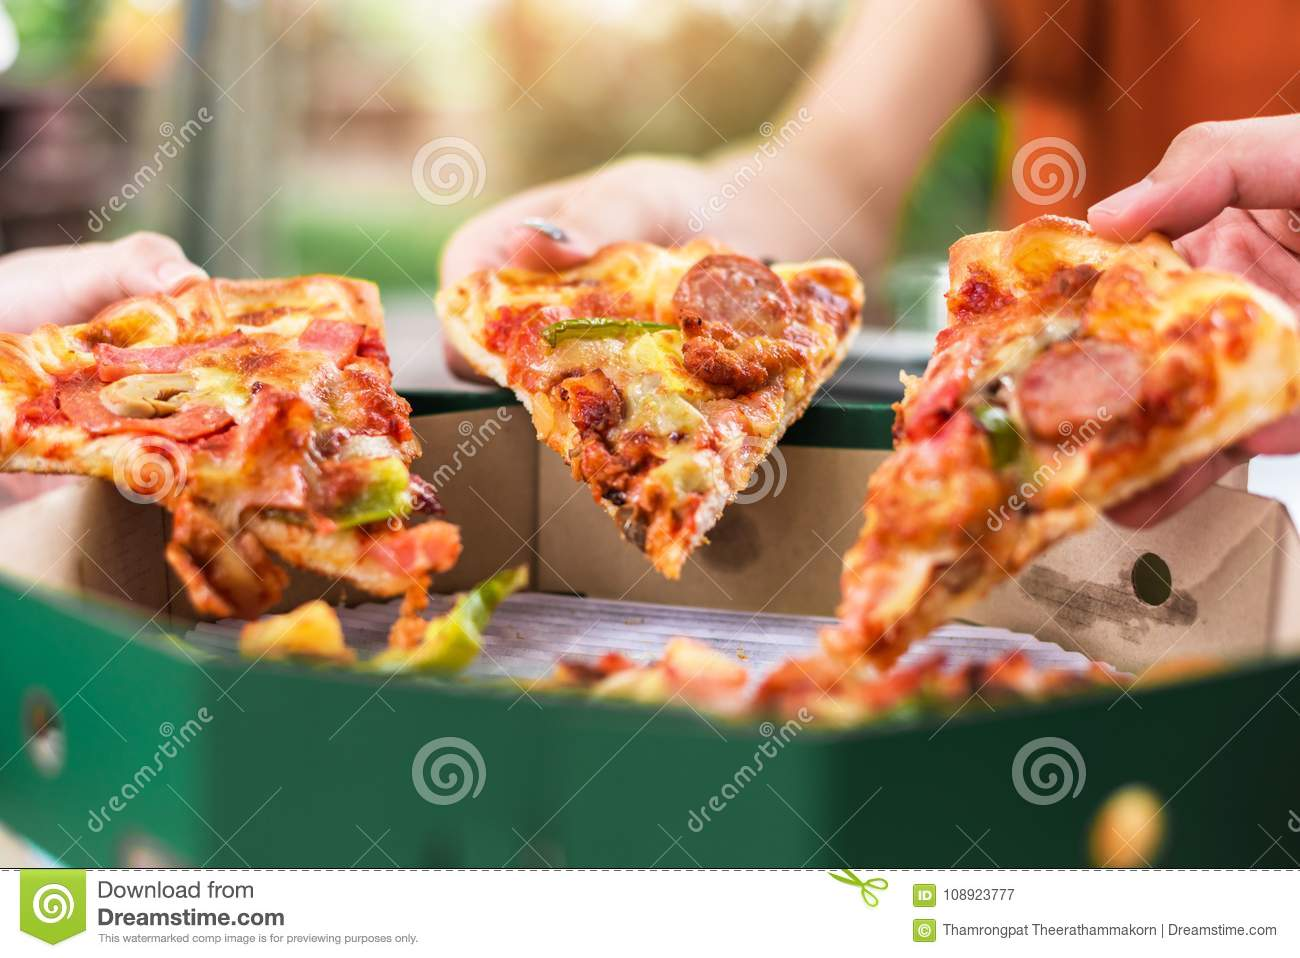 Download People Hands Taking Slices Of Pizza Margherita Margarita Stock Image